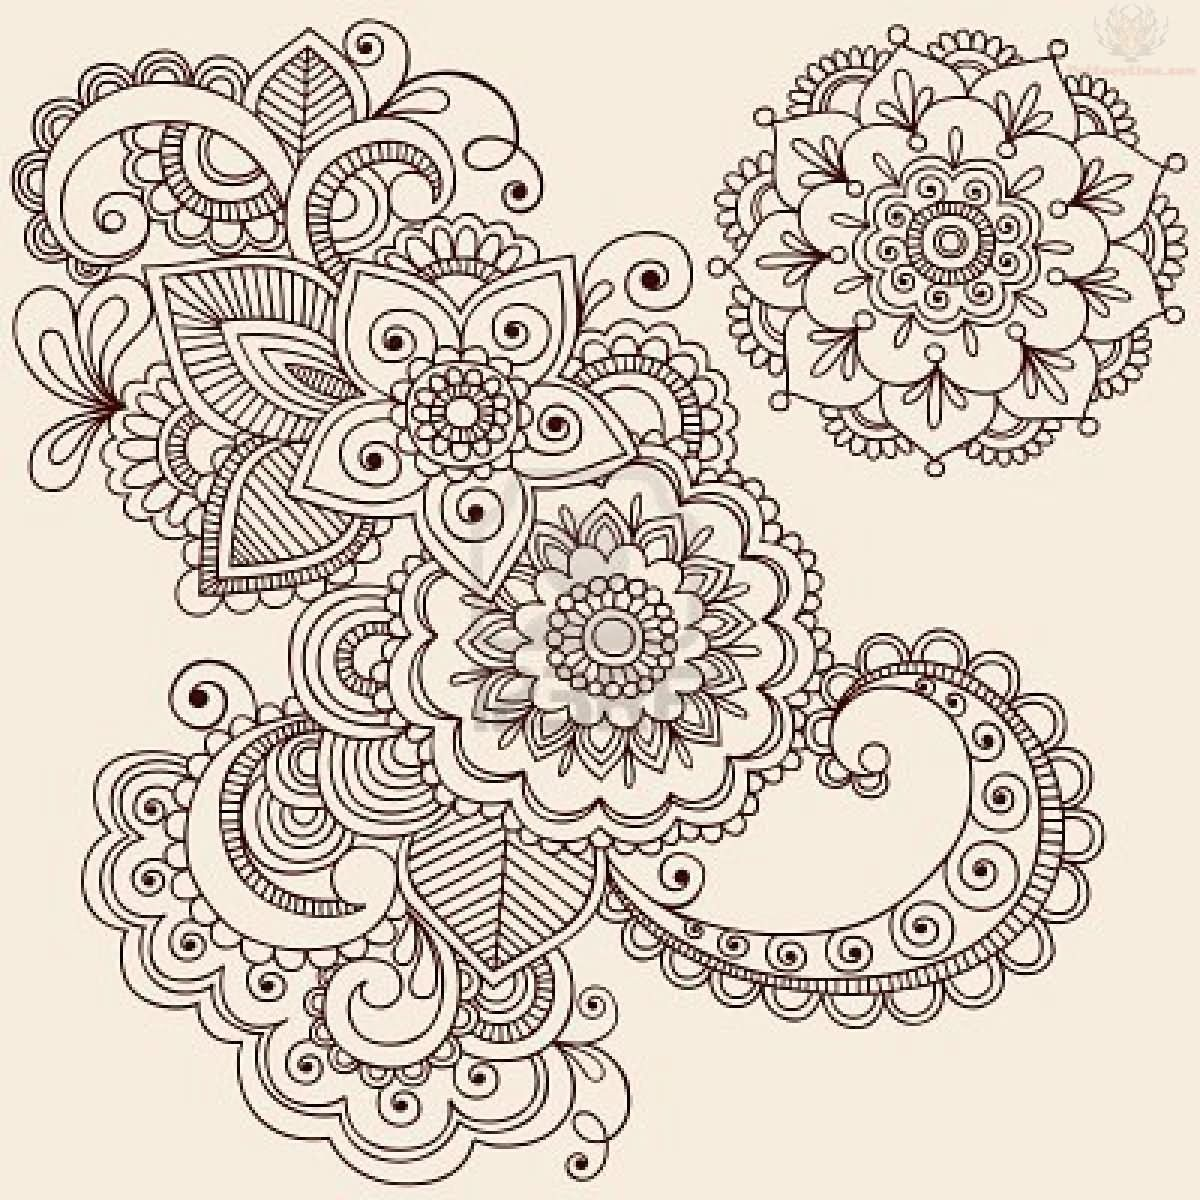 Paisley Pattern Tattoo Images Designs: Flowers Paisley Pattern Tattoo Designs